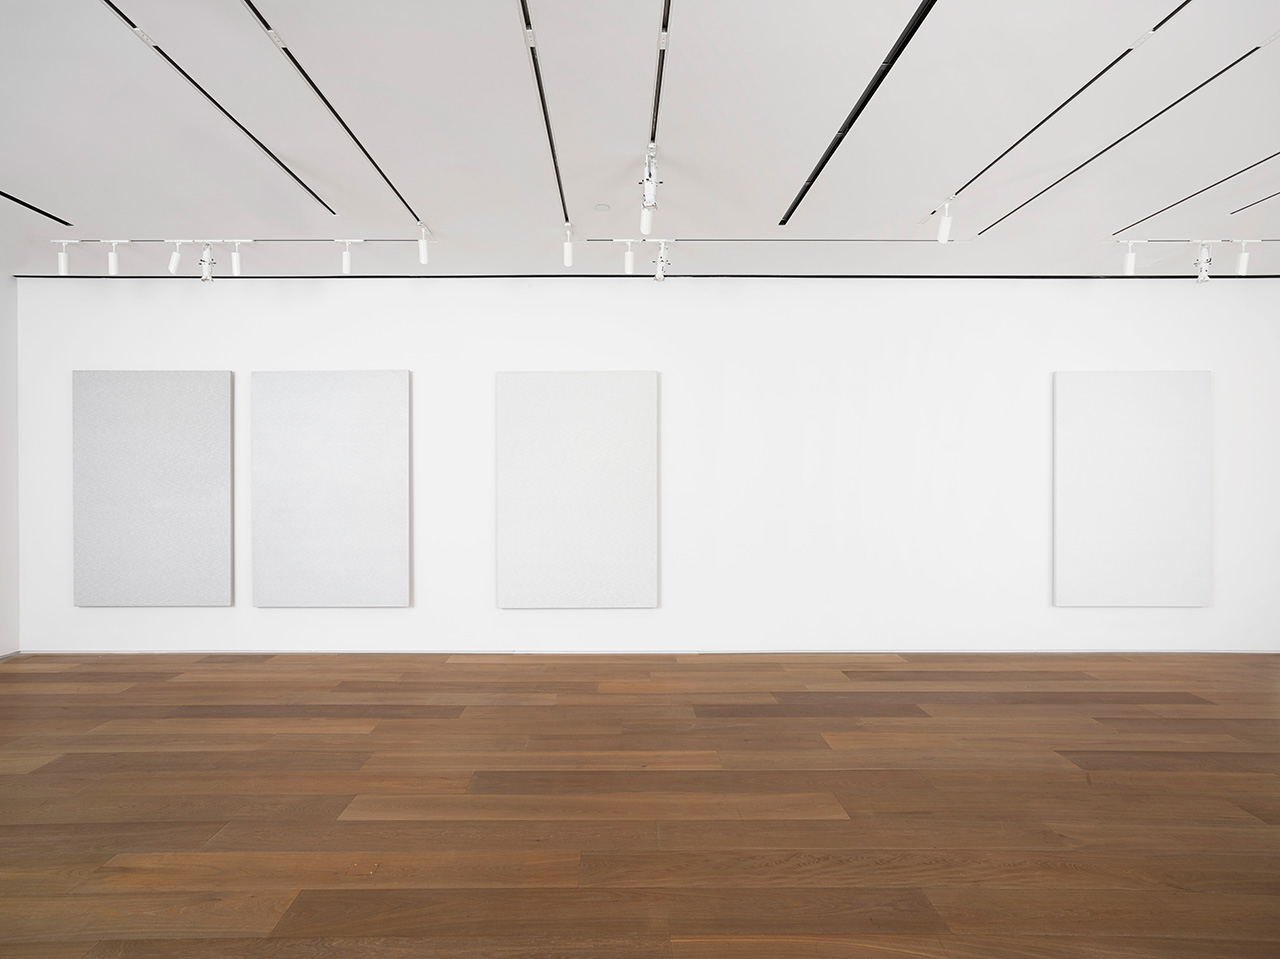 Installation view of Roman Opalka: Painting ∞ at Dominique Lévy Gallery